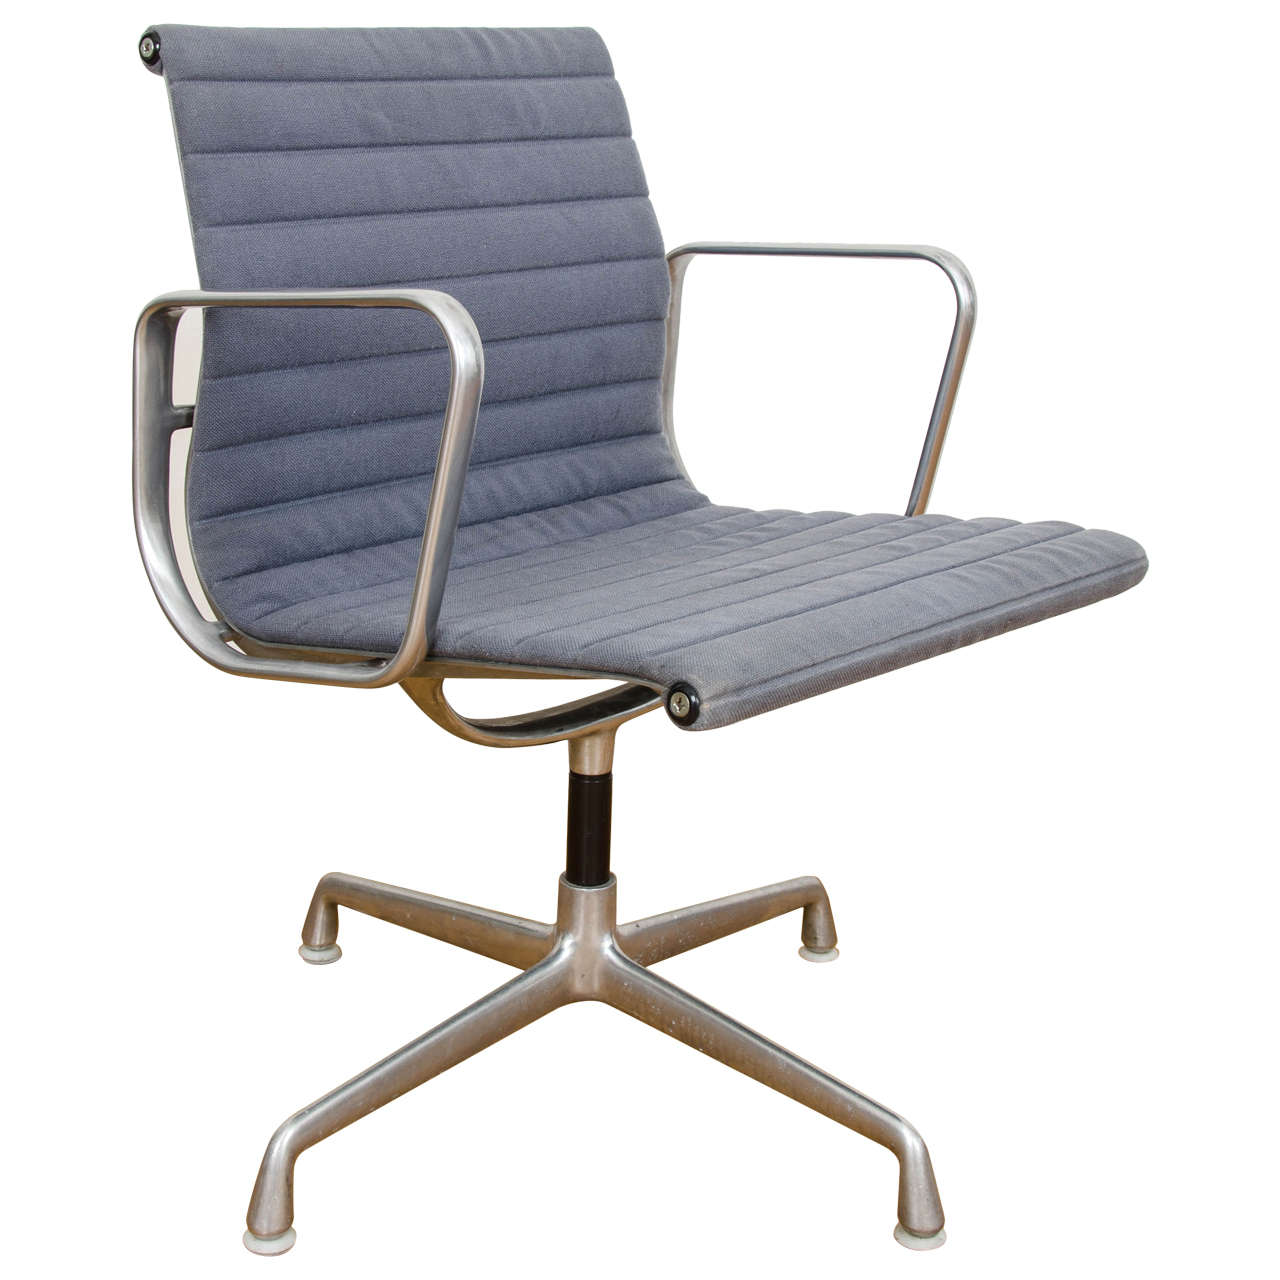 Eames Aluminium Group Management Chairs At 1stdibs